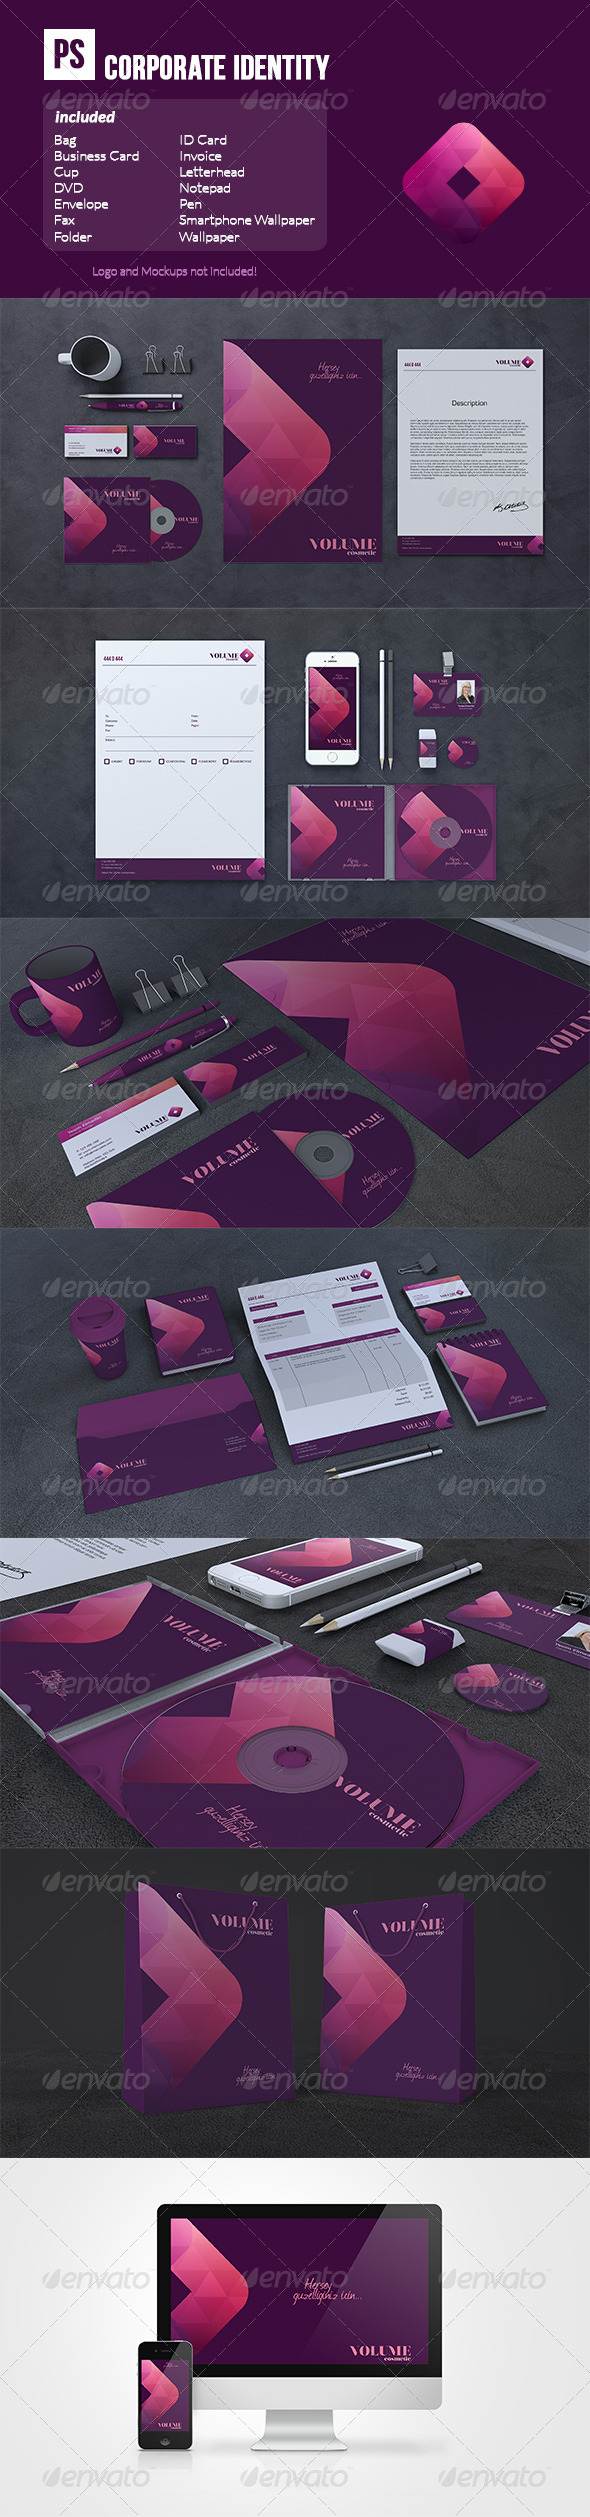 GraphicRiver Corporate Identity 6839816